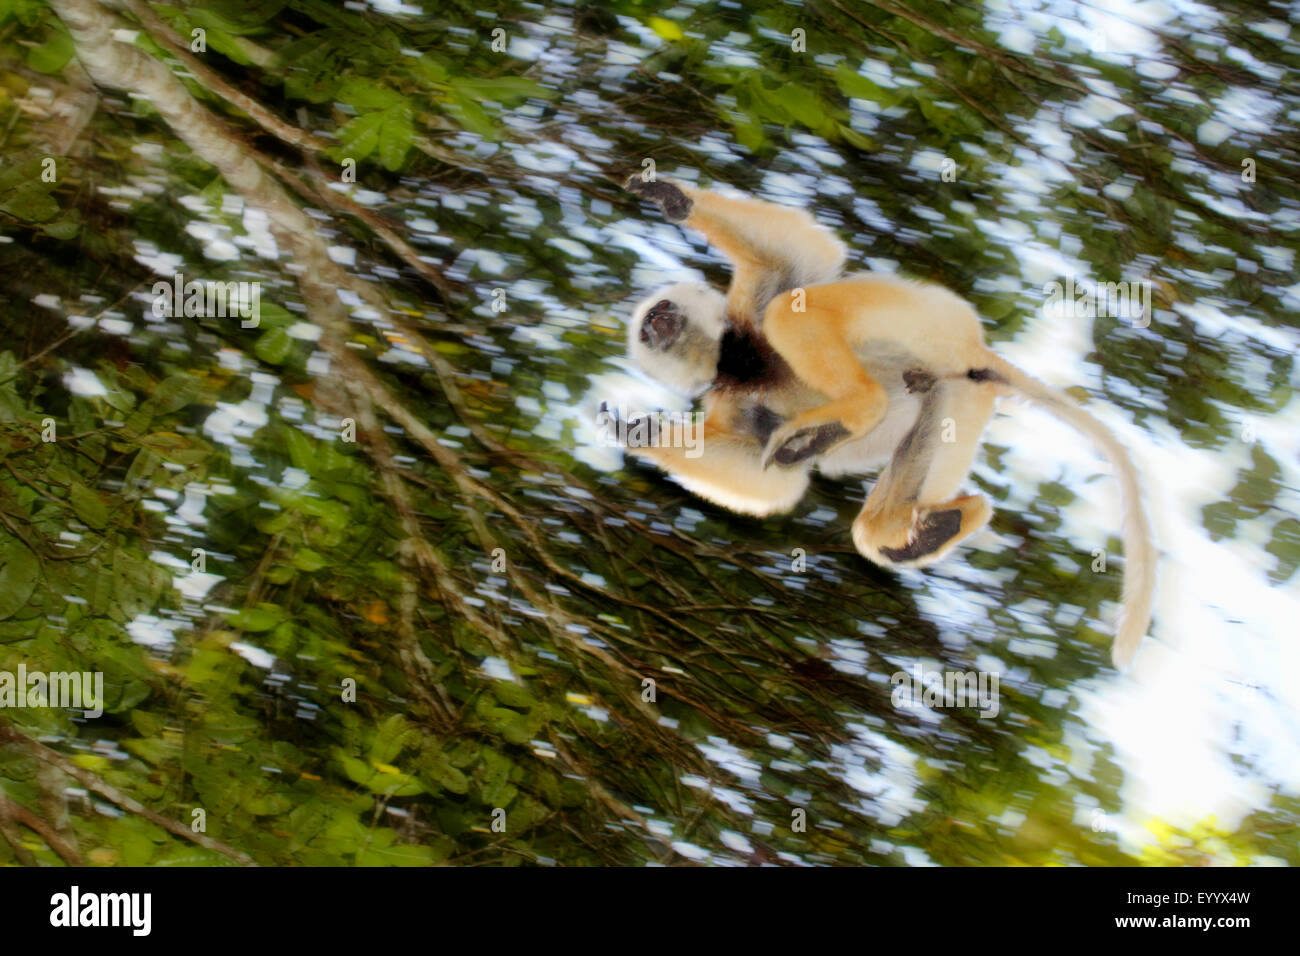 diadem sifaka, diademed sifaka (Propithecus diadema), jumping from tree to tree, Madagascar, Analamazaotra National - Stock Image